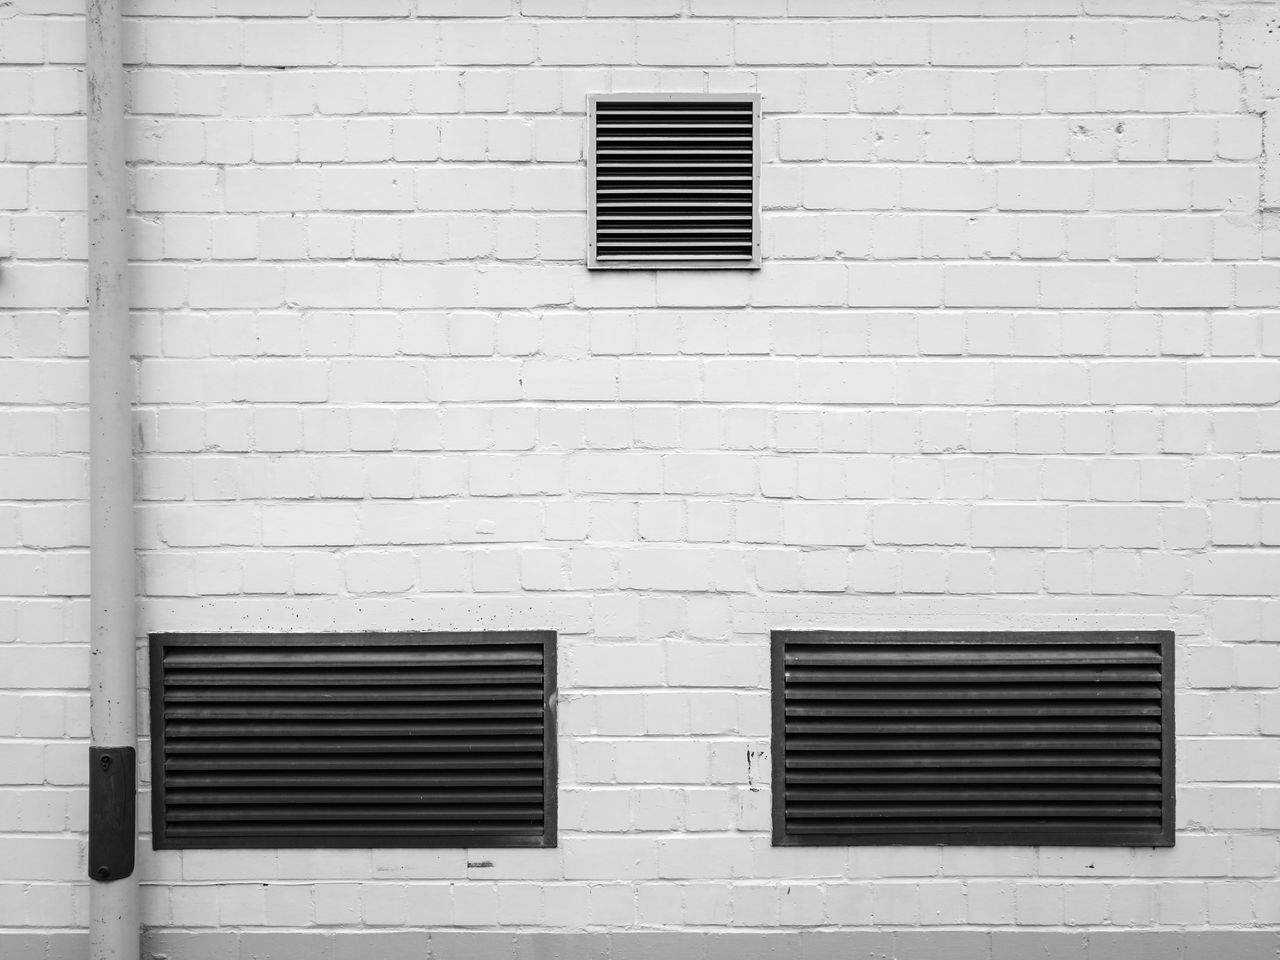 Monochromewall Architectural Detail Architecture Architecture_collection Architecturelovers Blackandwhite Photography Brick Wall Building Exterior Built Structure Cityexplorer Close-up Minimal Minimalism Minimalist Architecture Minimalistic Monochrome Monochrome Photography No People Schwarzweiß Simplicity Wall - Building Feature